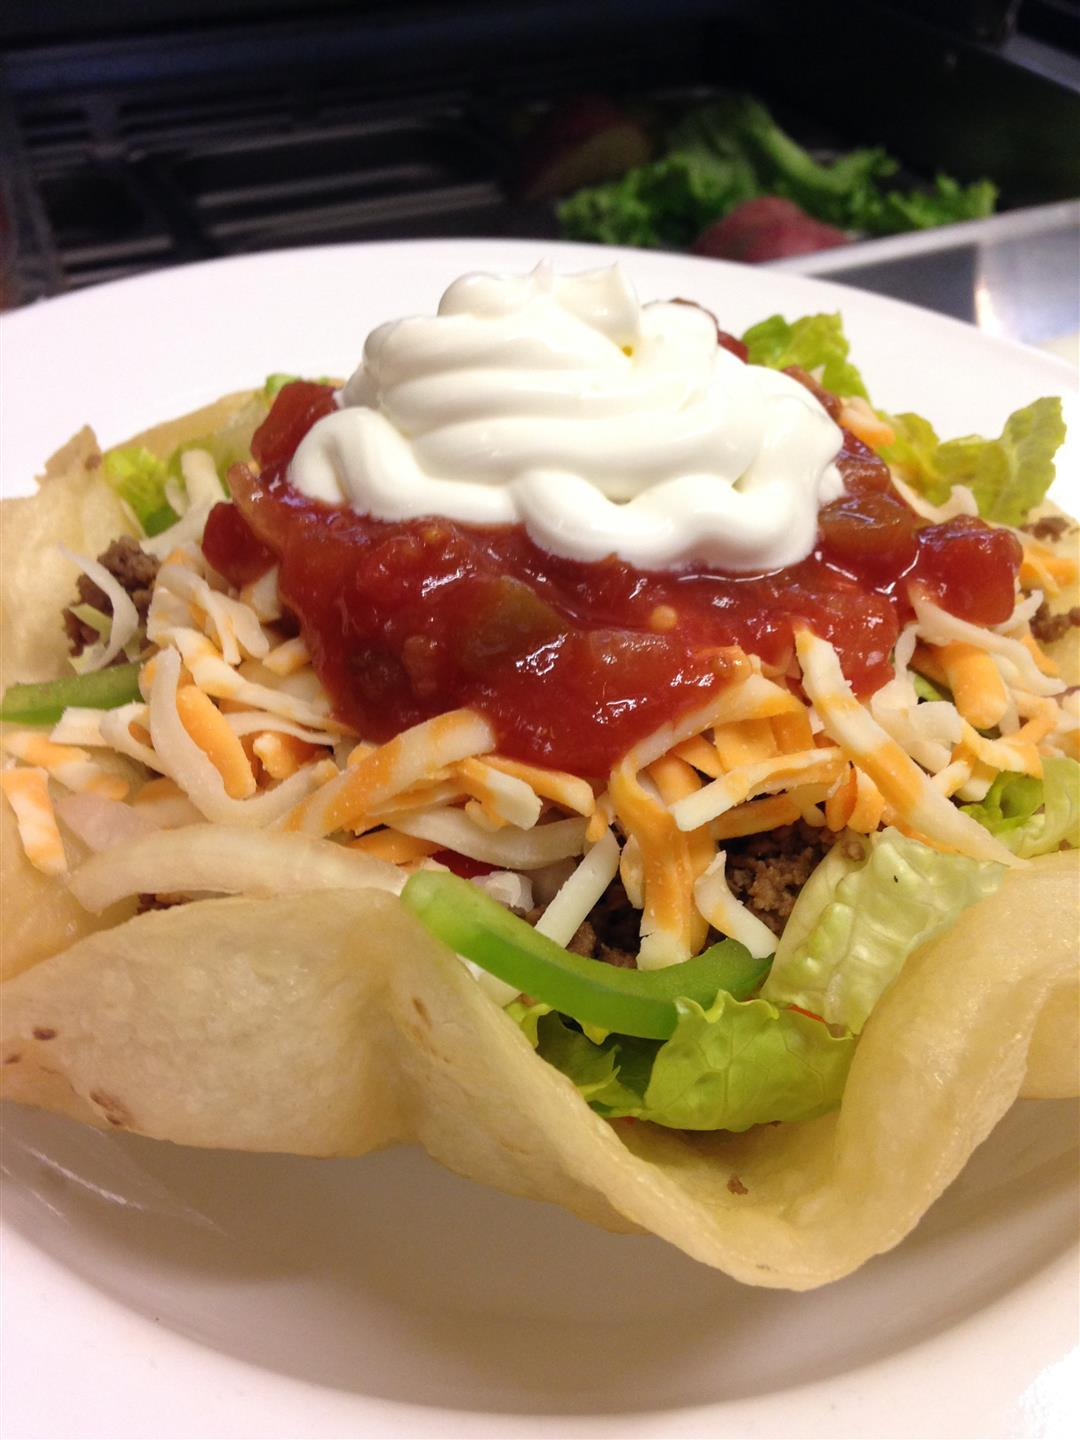 Taco bowl with tortilla shell with meat, lettuce, cheese, sour cream, and salsa